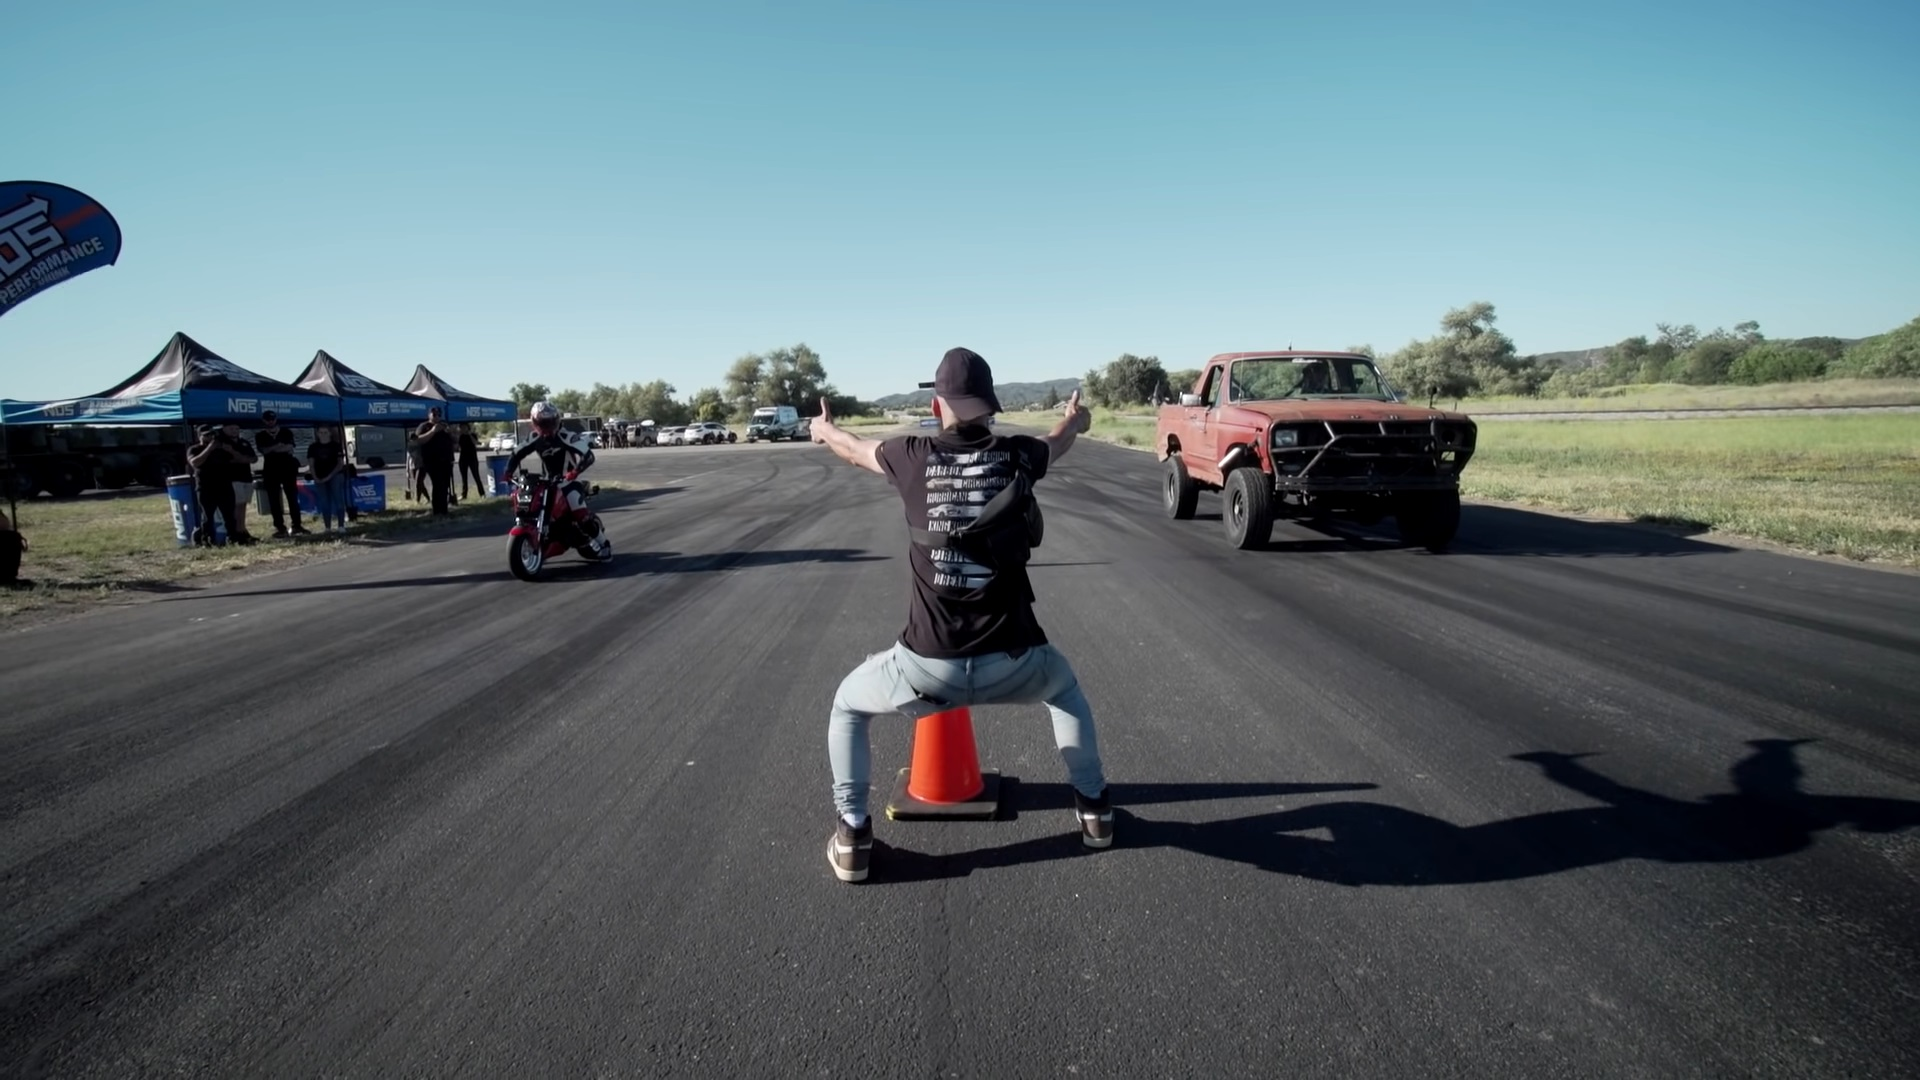 650-HP Ford Bronco vs. 40-HP Honda Grom Drag Race Is Crazy On Every Level